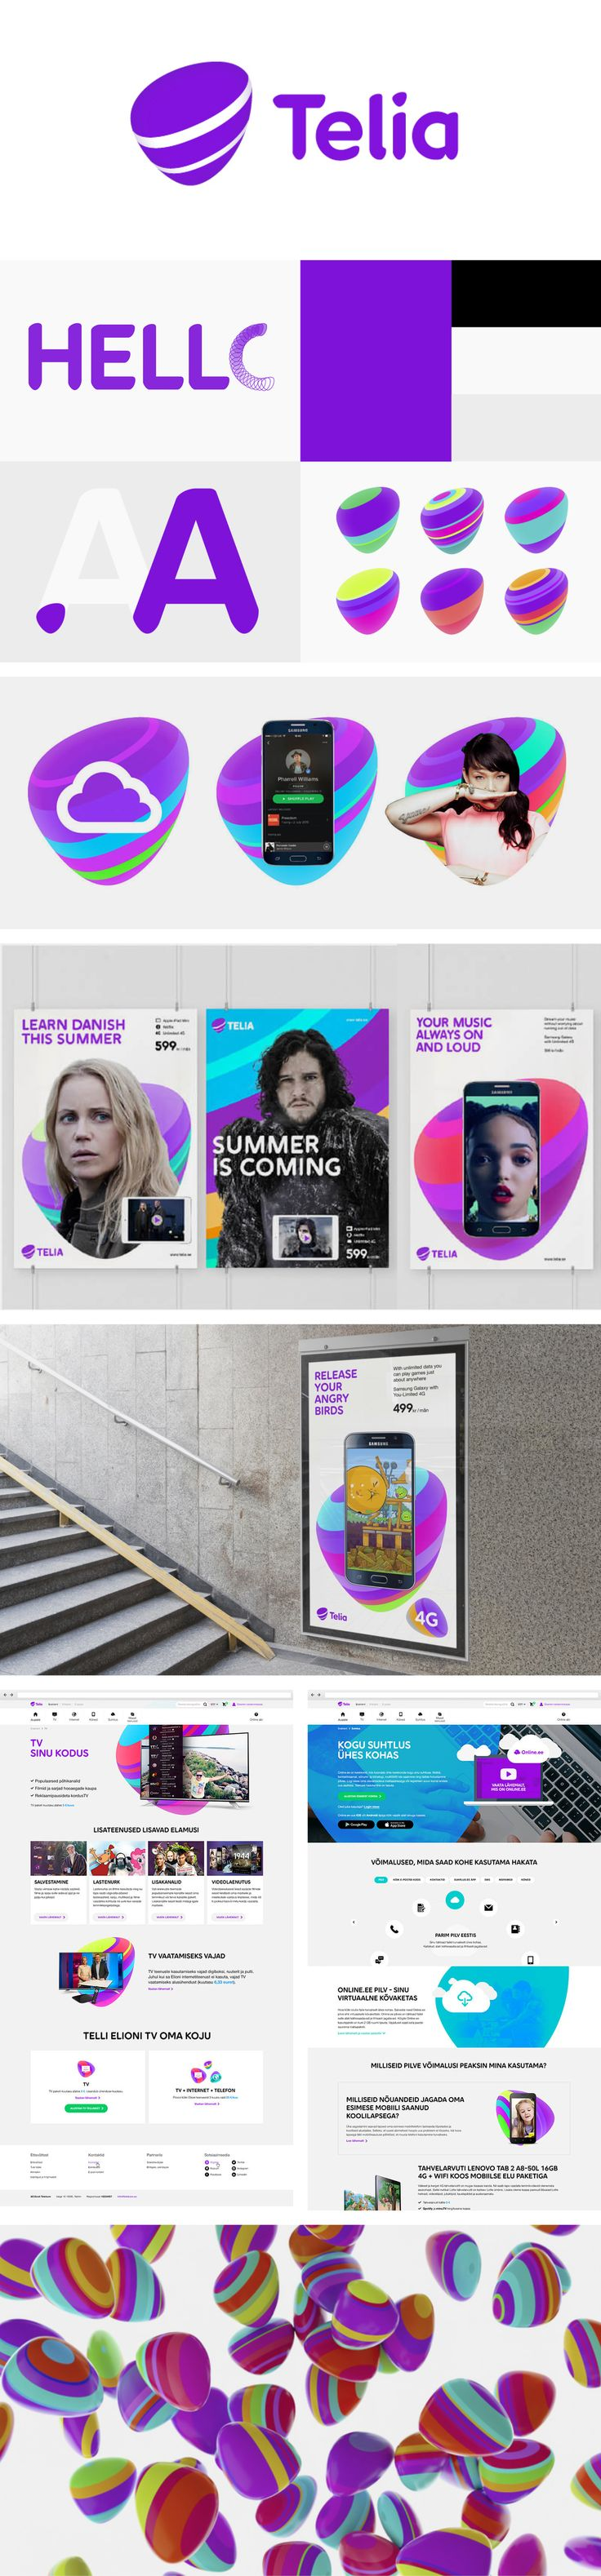 More corporate-designs are collected on: https://pinterest.com/rothenhaeusler/best-of-corporate-design/ · Agency: Wolff Olins · Client: Telia Company #branding #identity #corporatedesign